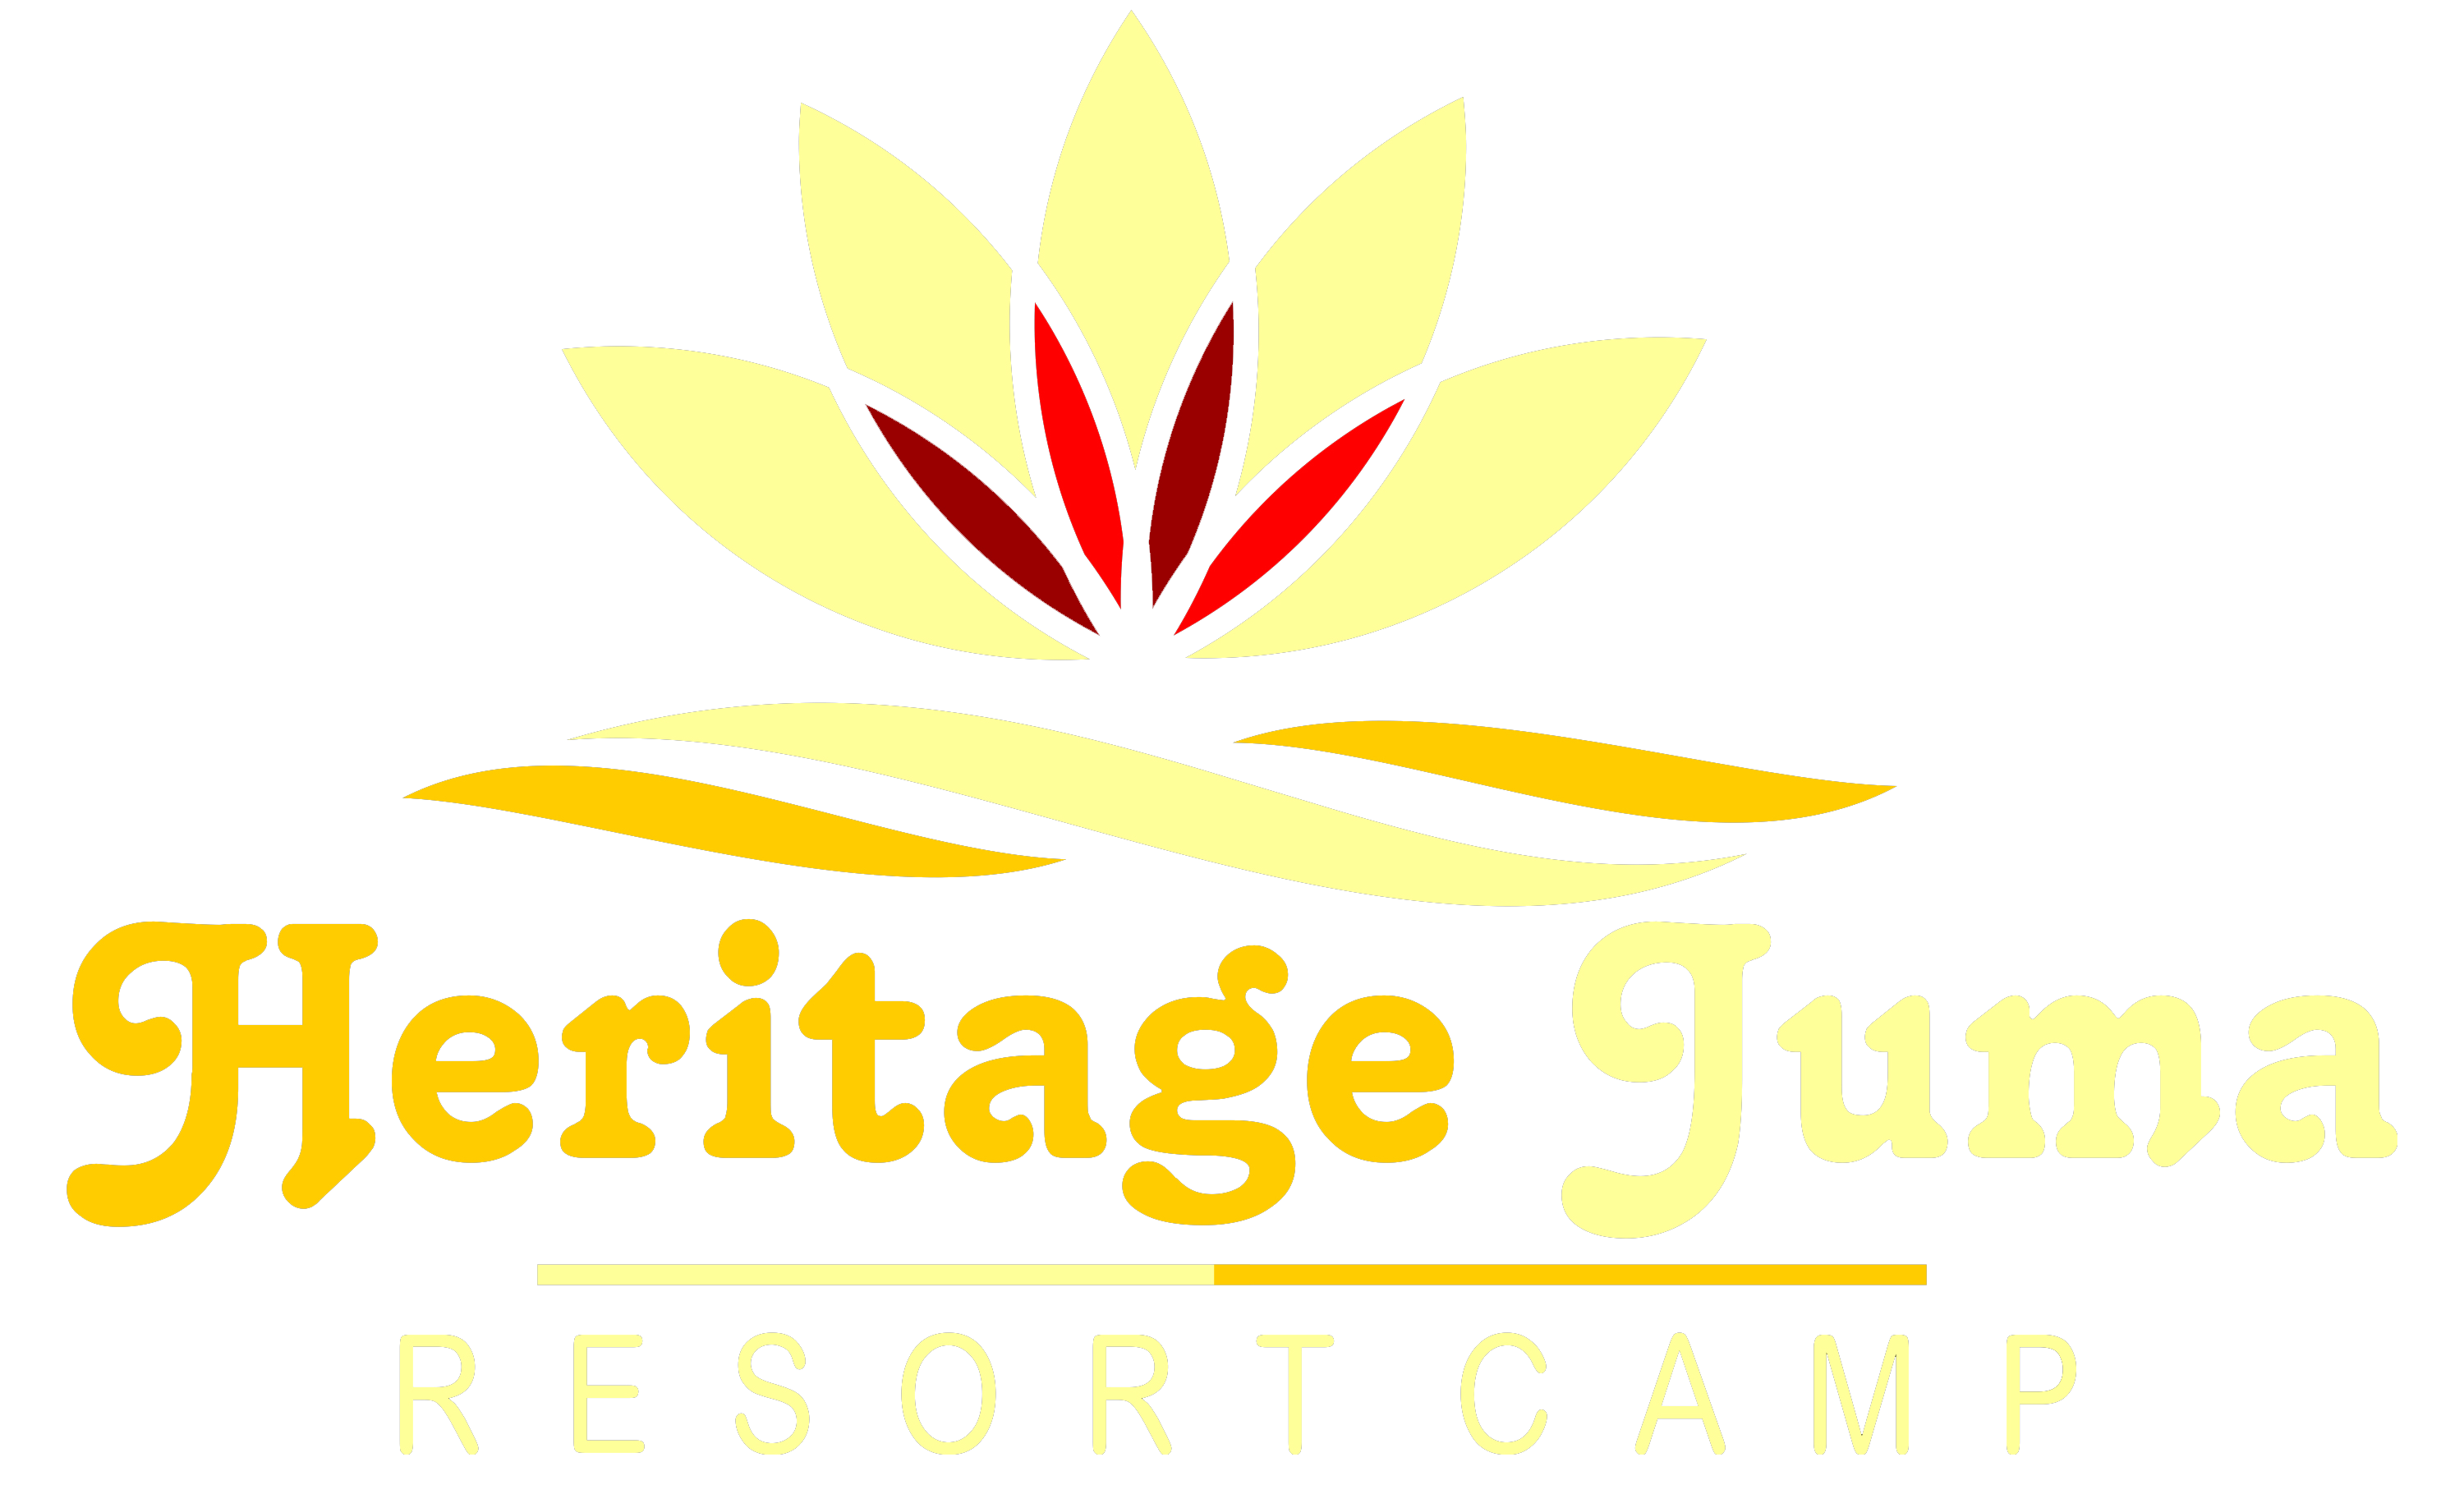 Heritage Juma Resort Camp